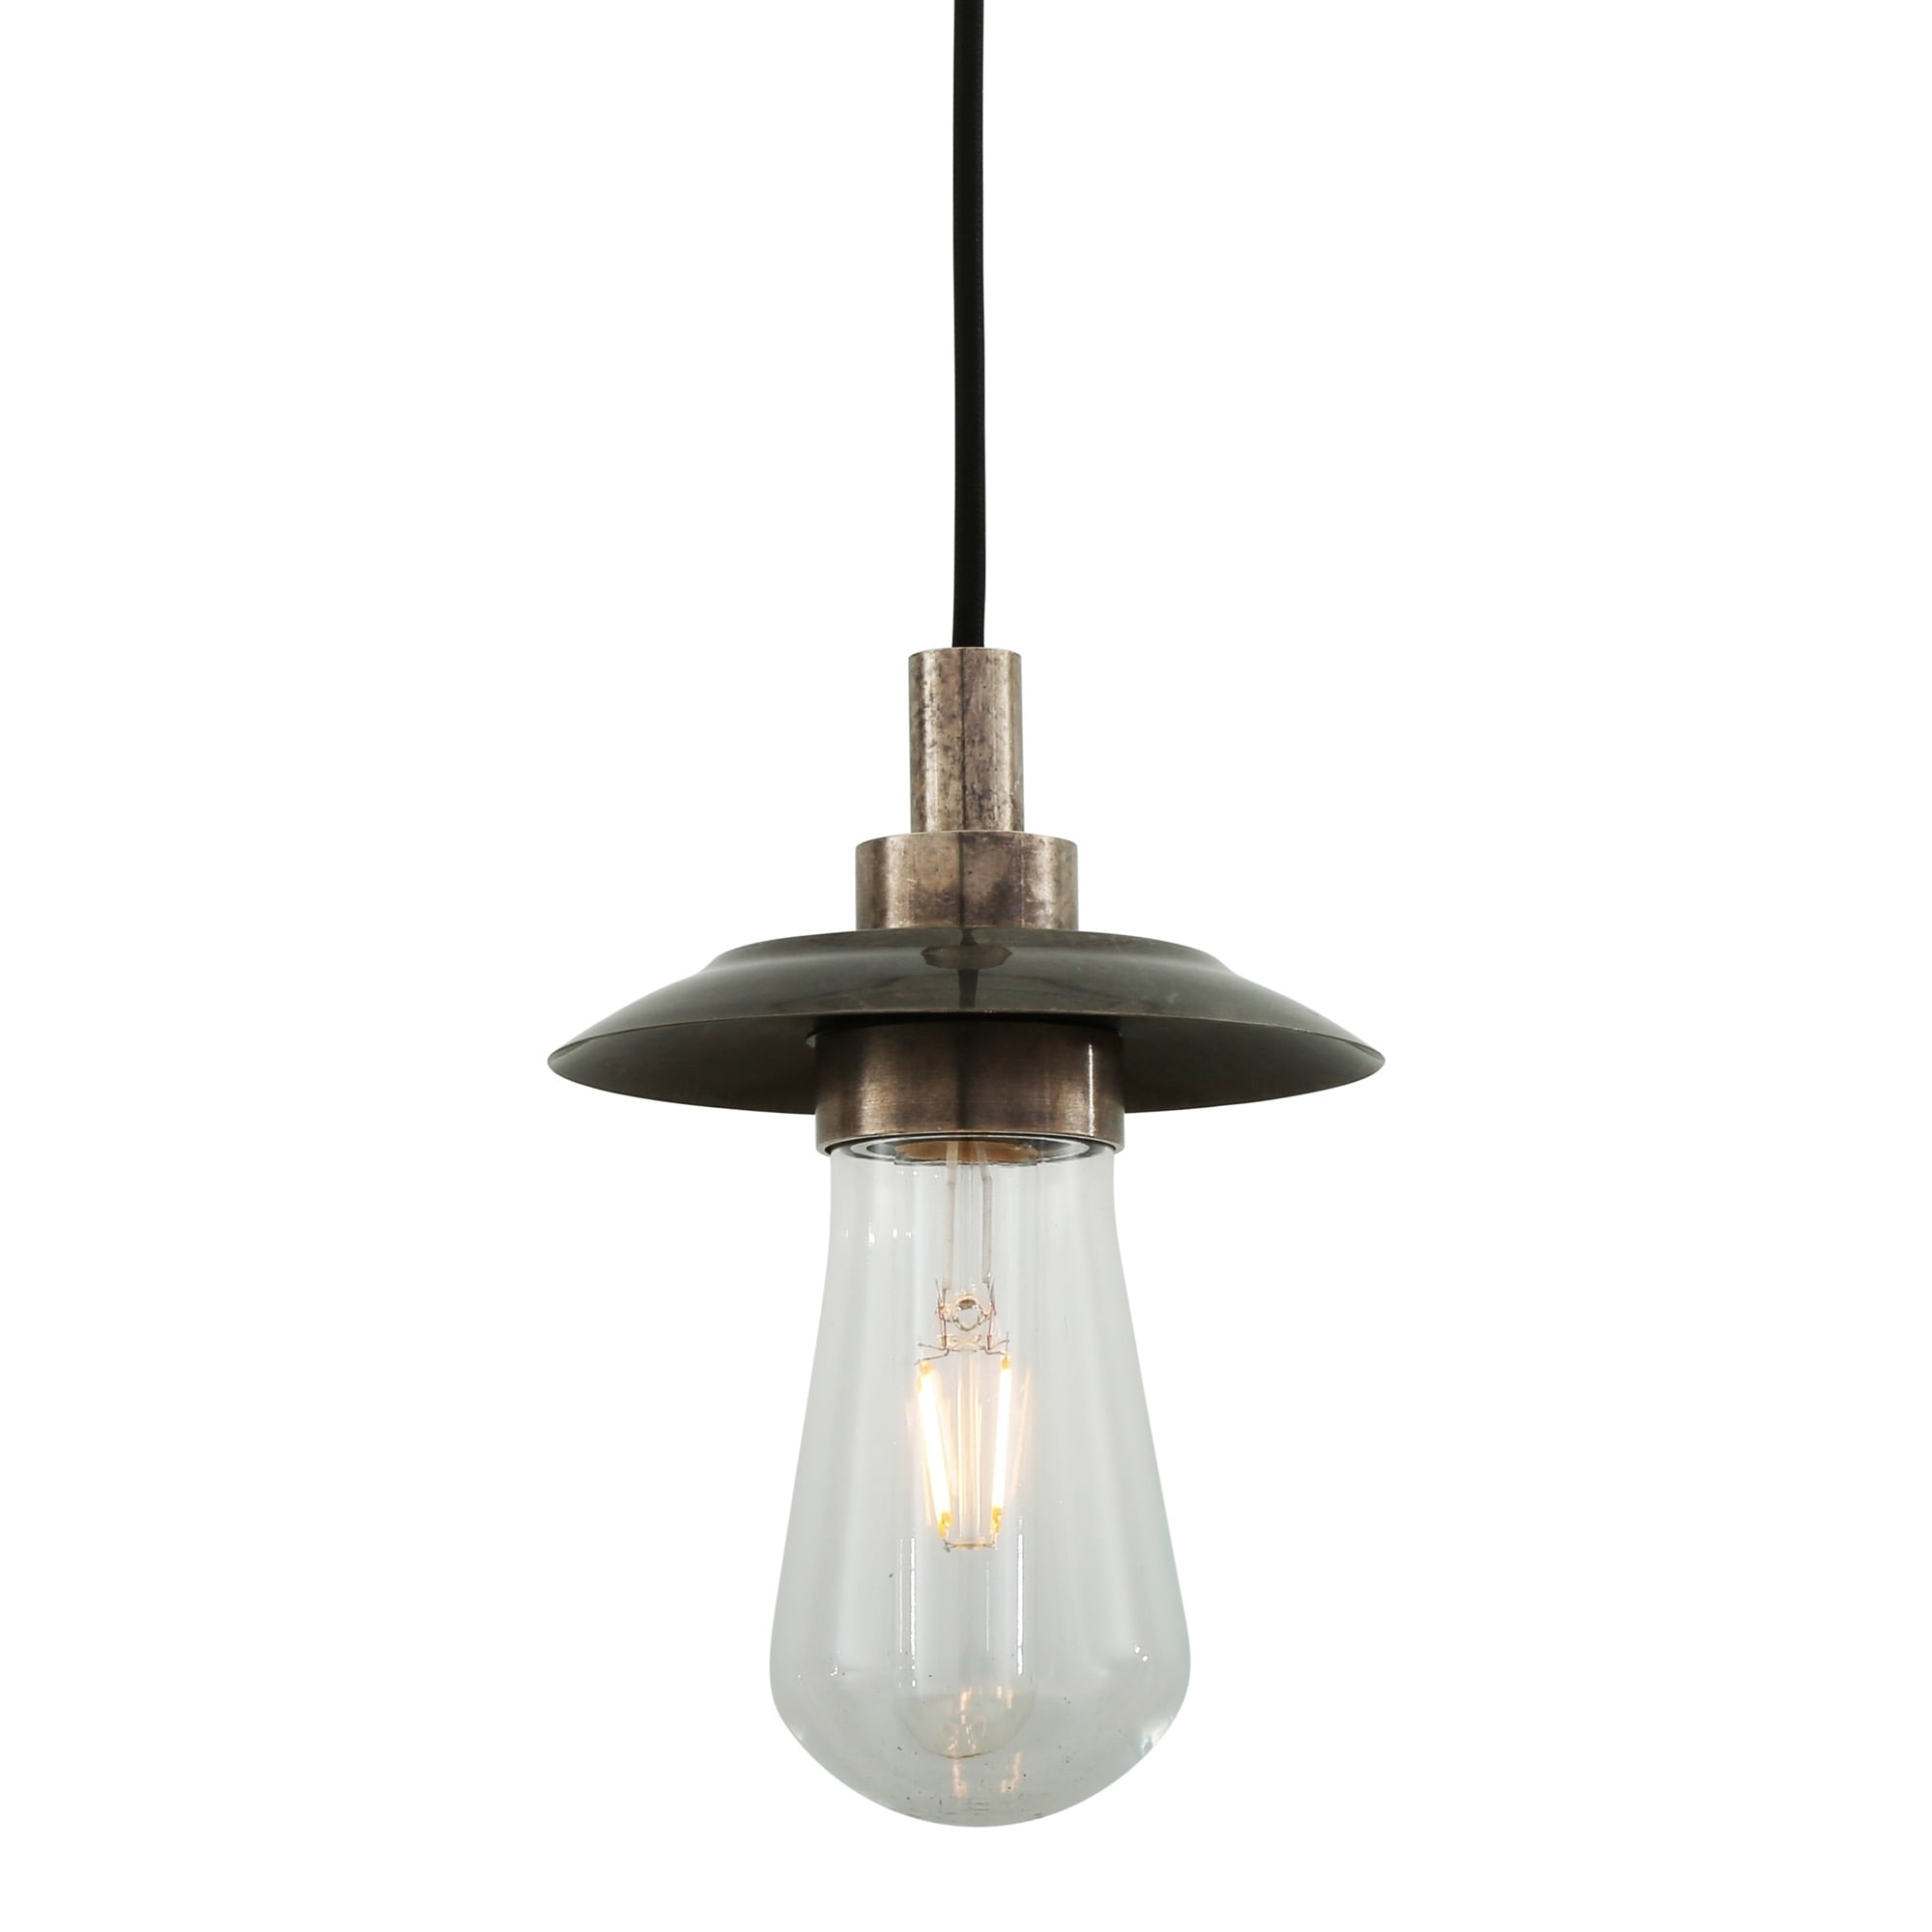 ren industrial antique silver bathroom pendant with clear glass